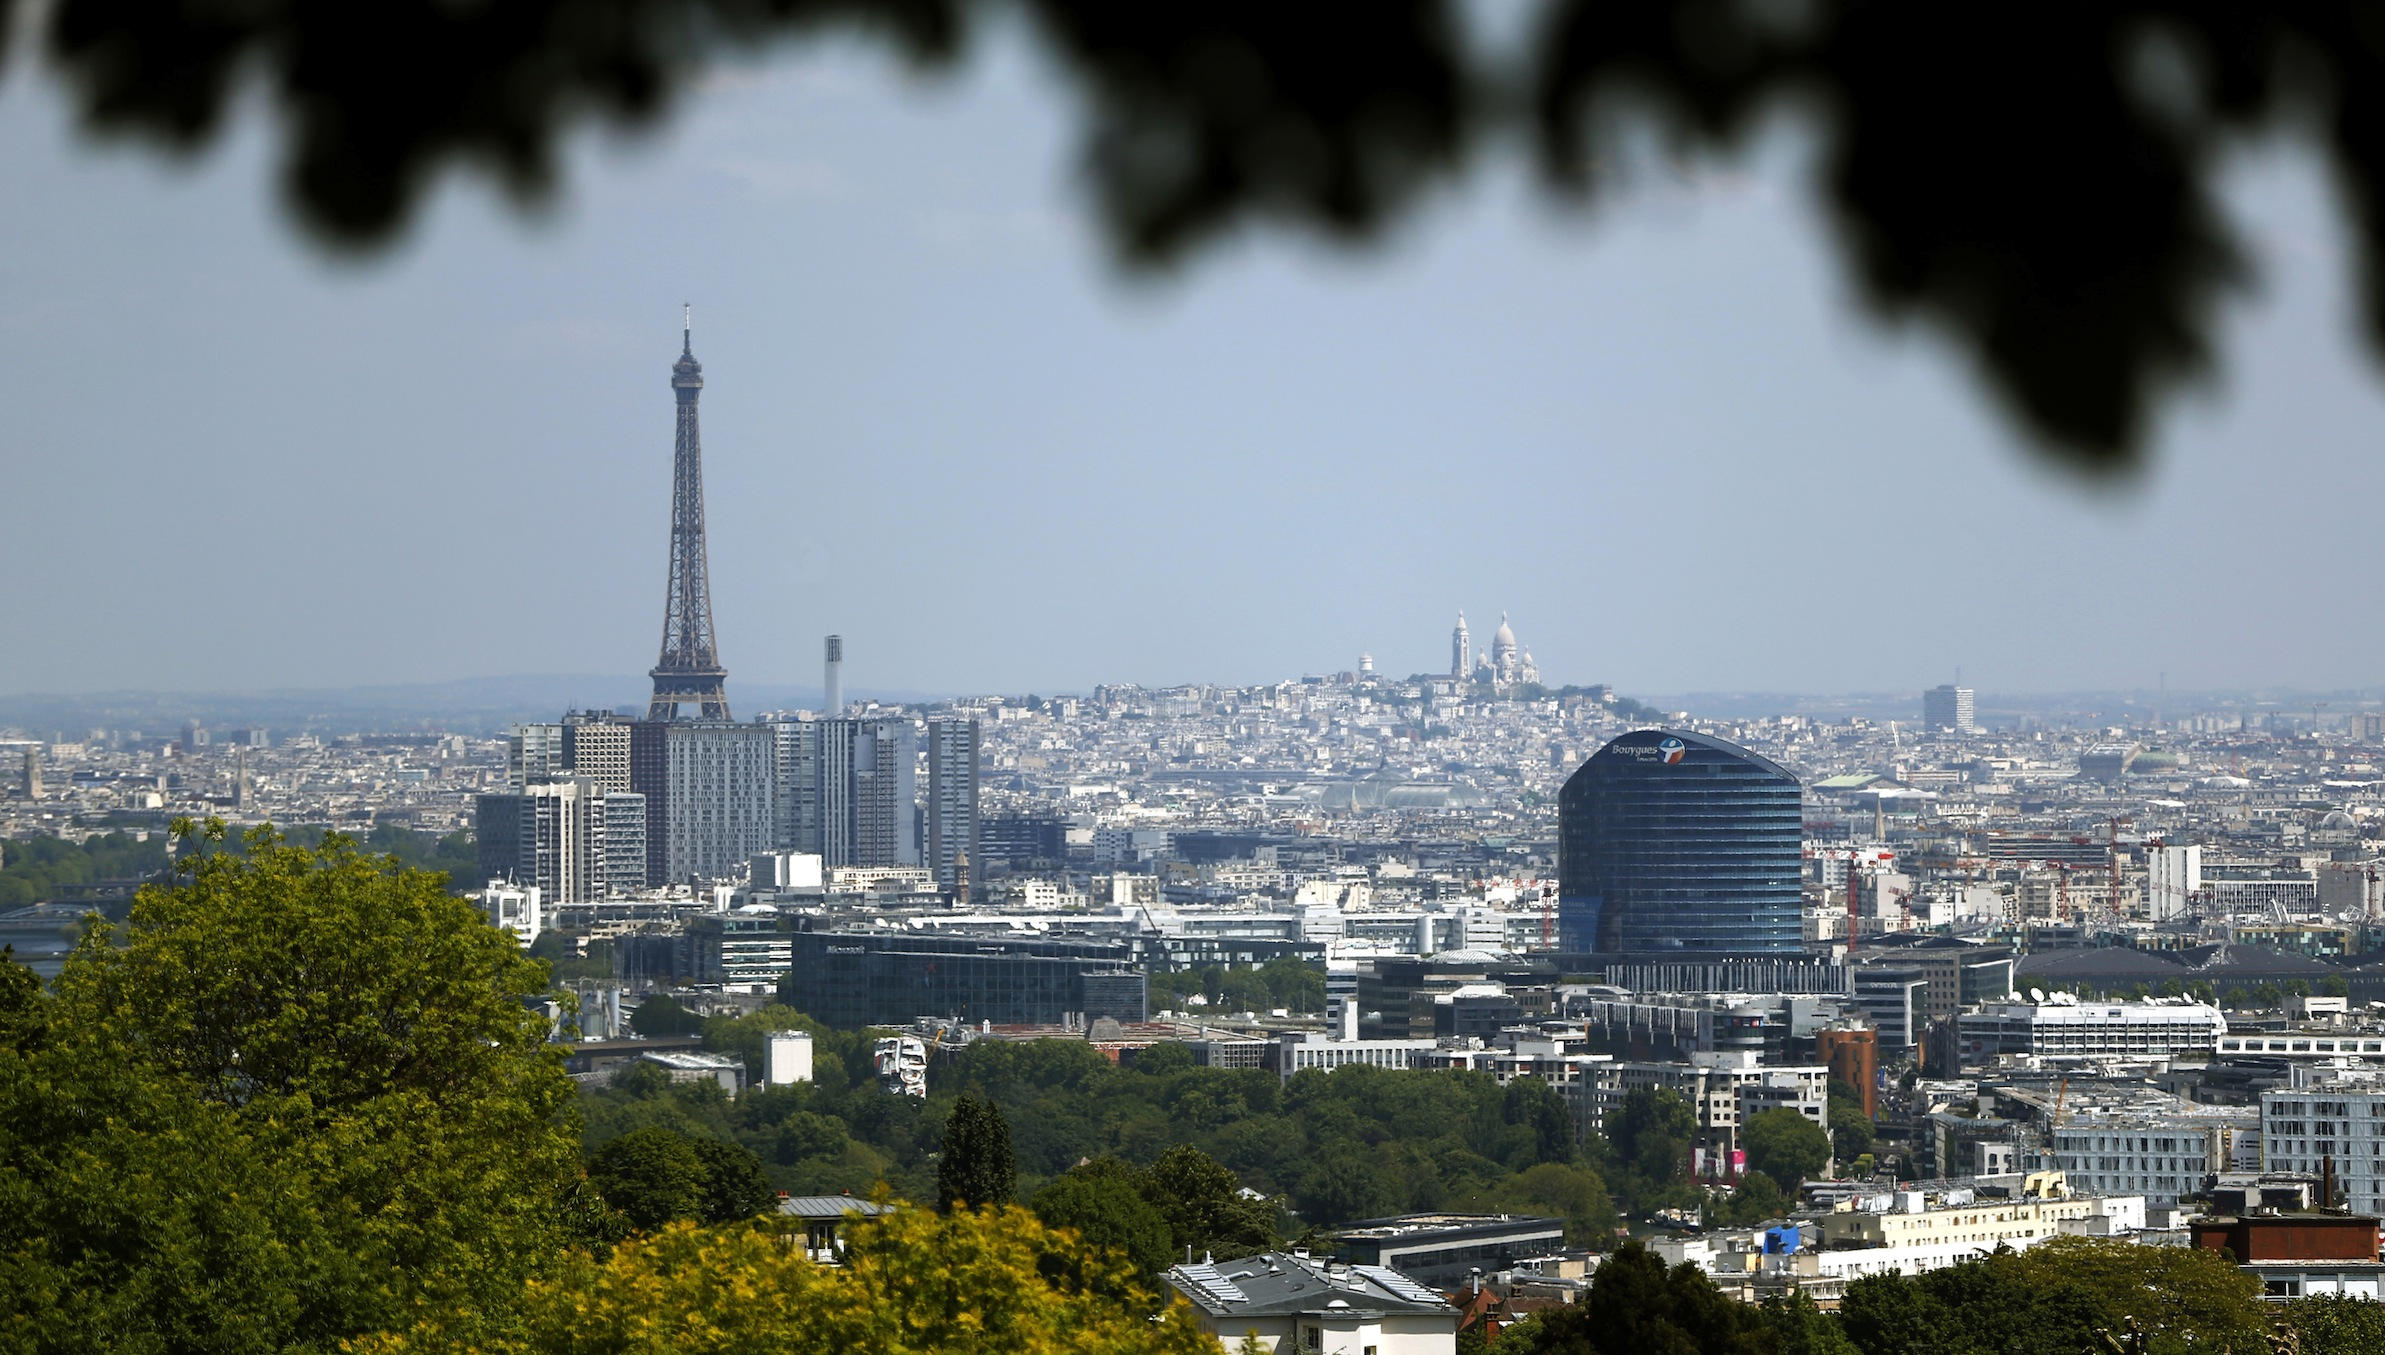 The Paris skyline, with the Eiffel tower, is seen from the Parc de l'observatoire in Meudon, near Paris, as warm and sunny weather continues in France, May 16, 2014.  REUTERS/Charles Platiau (FRANCE - Tags: ENVIRONMENT BUSINESS CITYSPACE) - RTR3PI9P